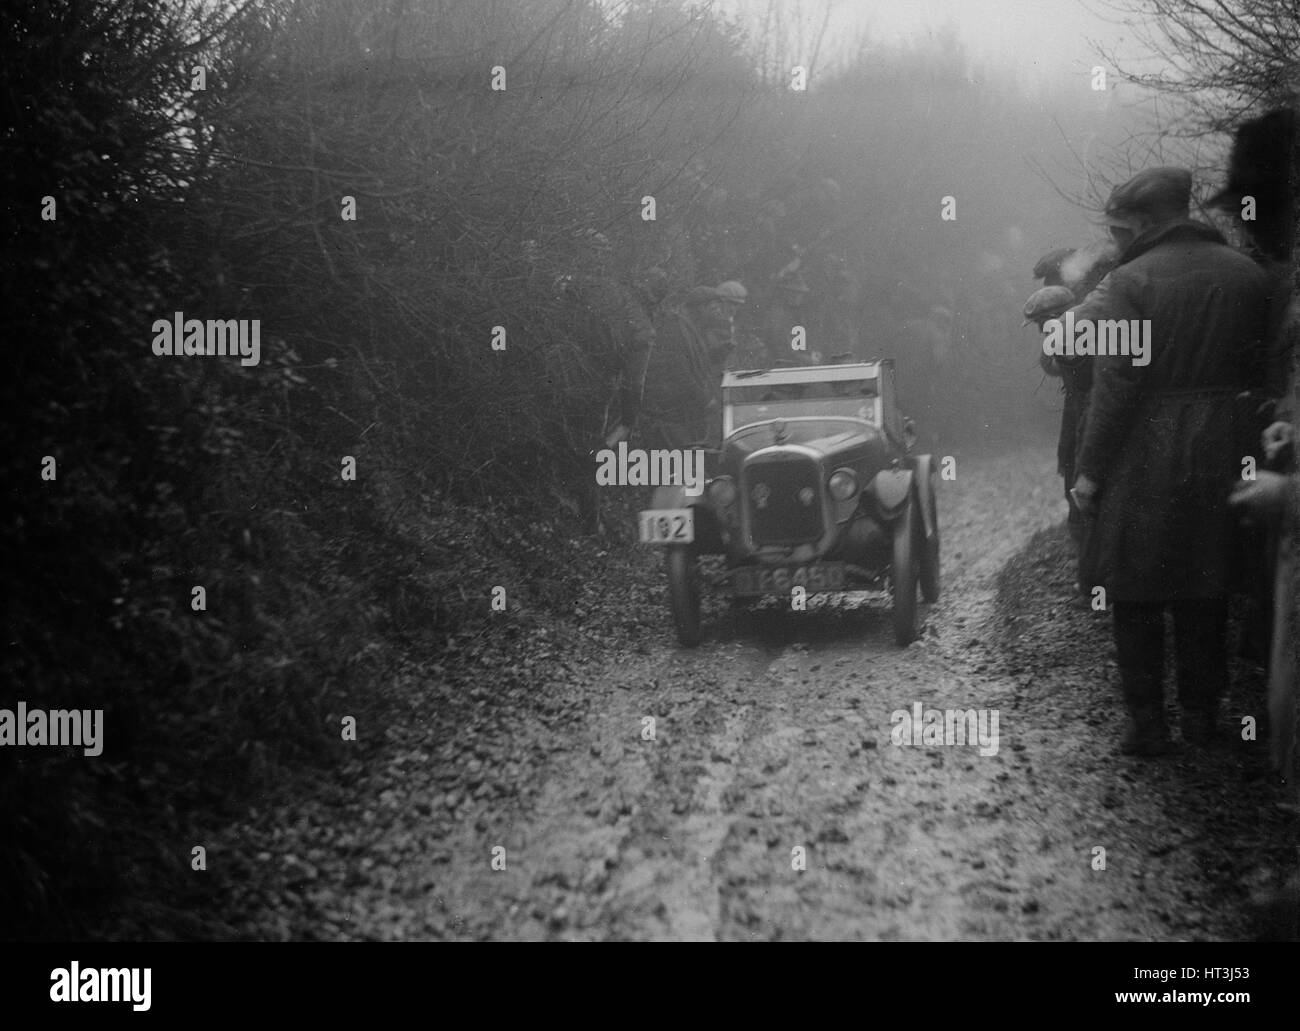 Austin 7 of HC Jacobs competing in the MCC Exeter Trial, Meerhay, Dorset, 1930. Artist: Bill Brunell. - Stock Image